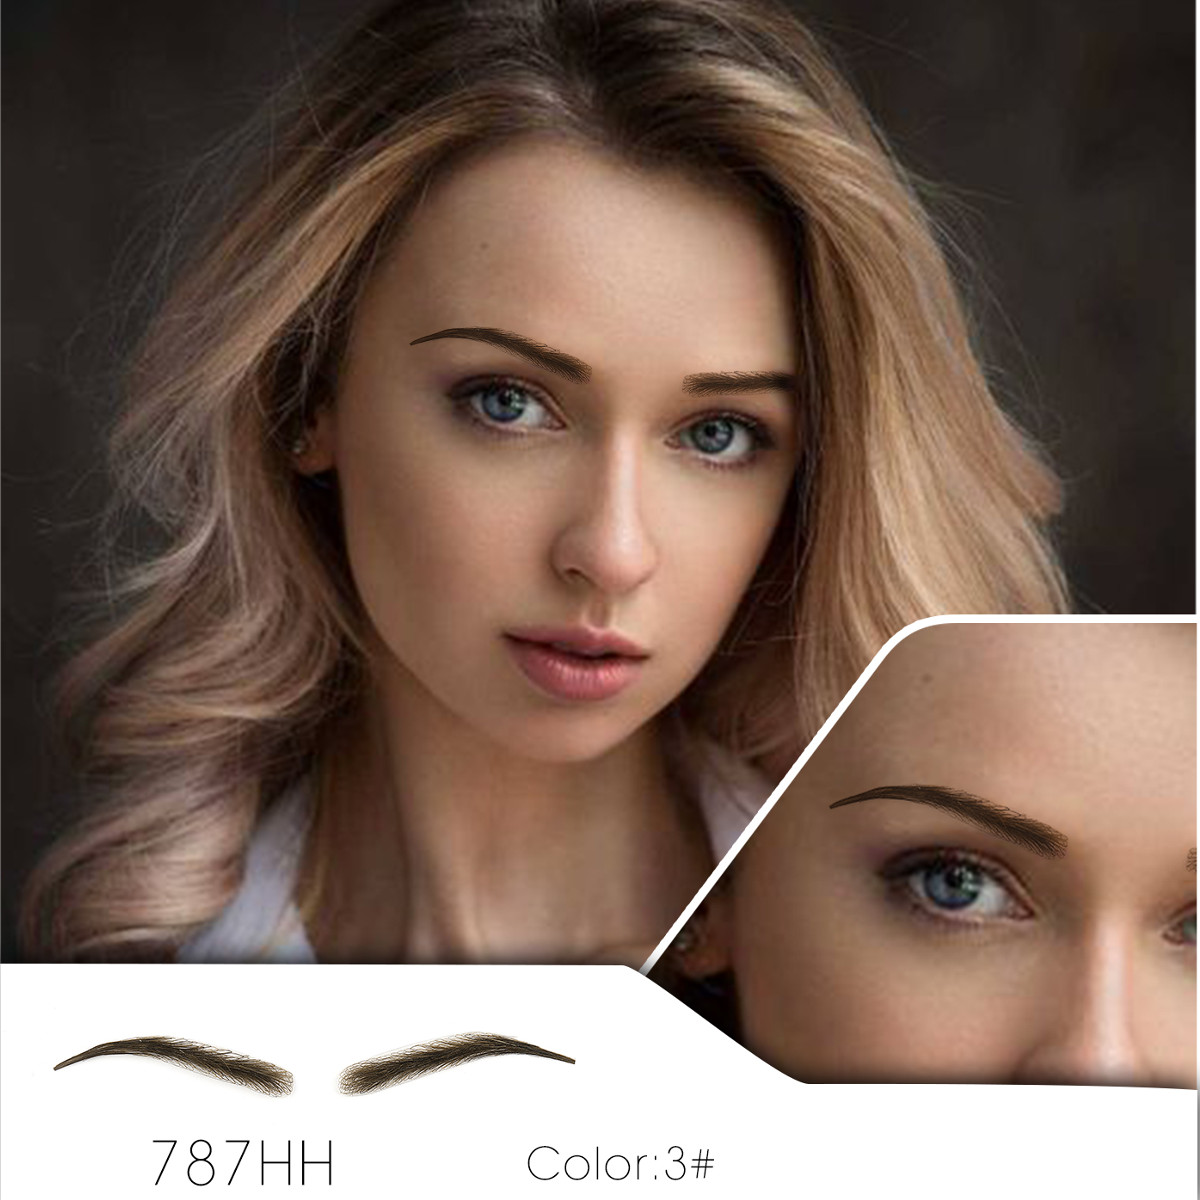 Handmade Human Hair False Eyebrows Lace Base For Women For Party Wedding Cosplay Star Fake Eyebrow Synthetic Eyebrows-in Eyebrow Enhancers from Beauty & Health